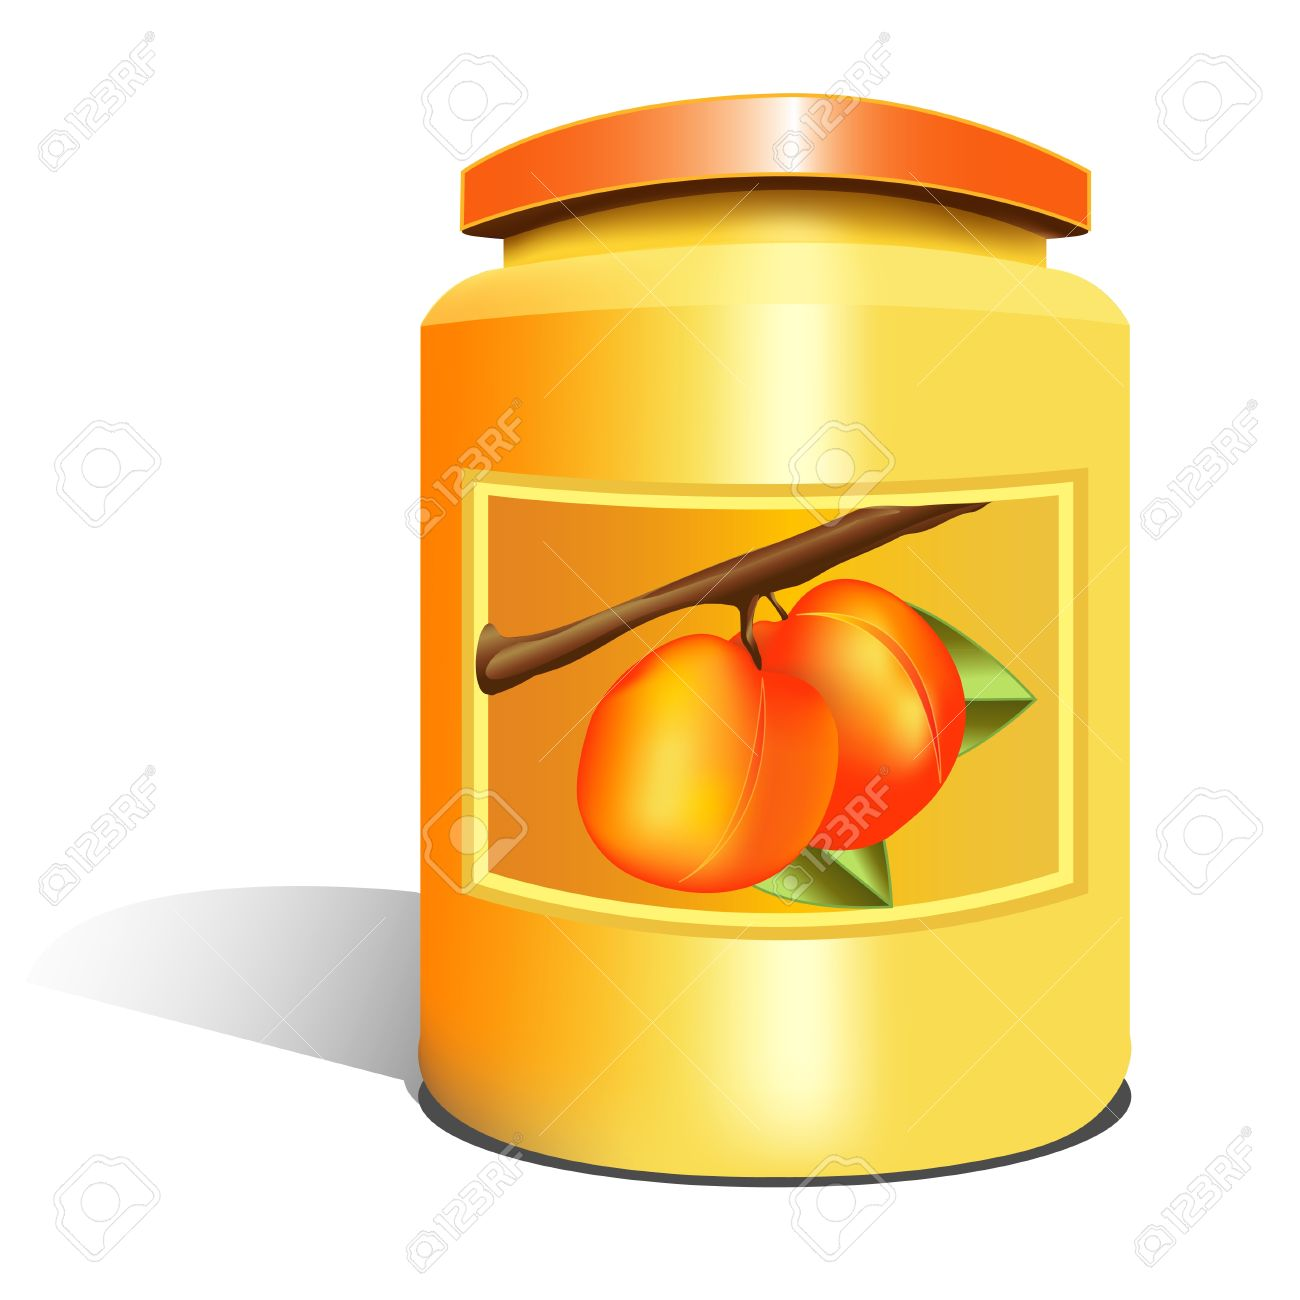 Isolated Apricot Jam Jar Royalty Free Cliparts, Vectors, And Stock.